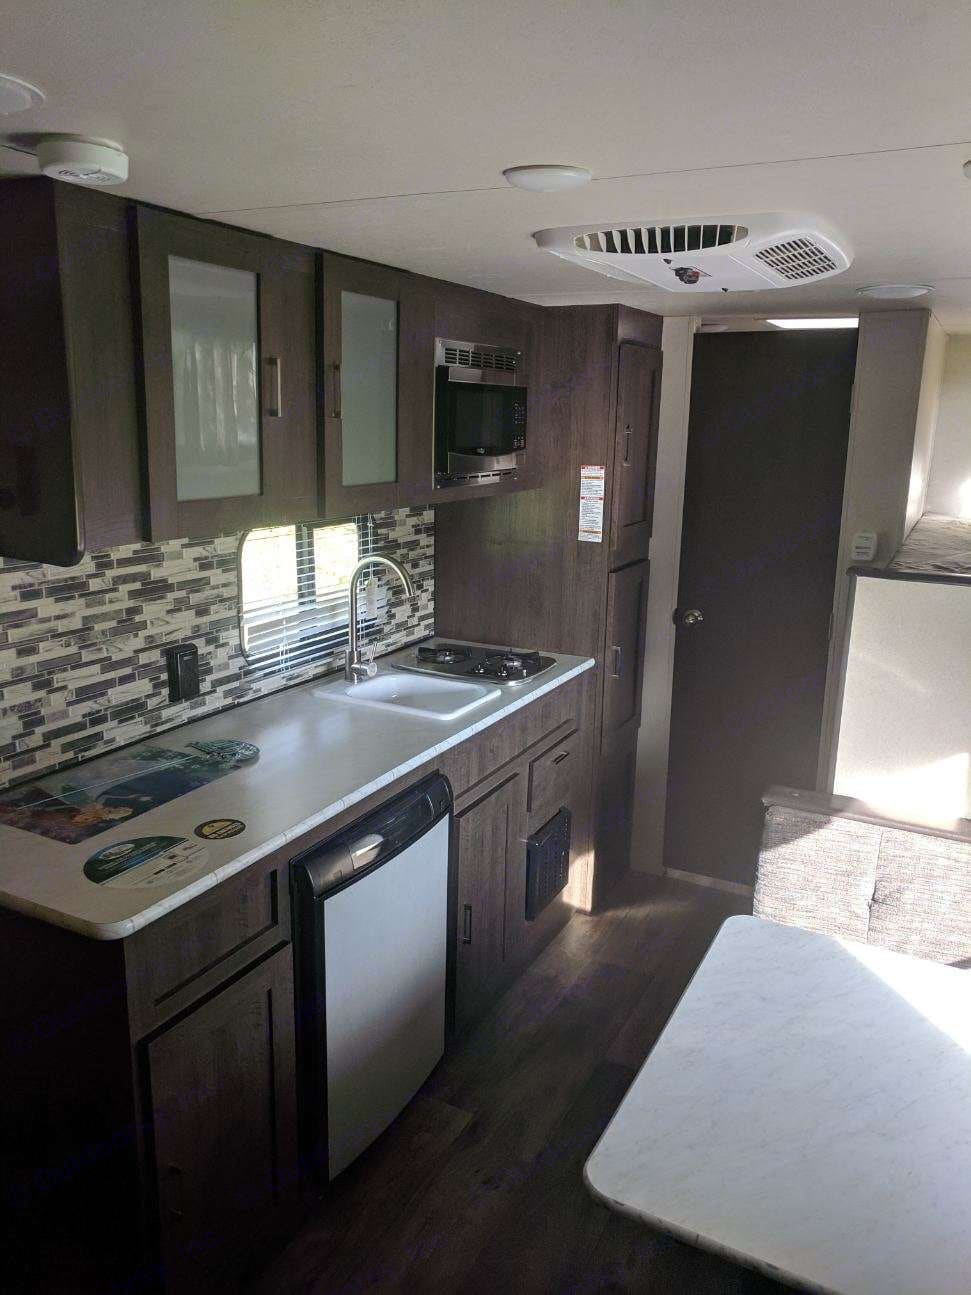 Small fridge, 2 burner oven, microwave and cabinet space. Forest River Wildwood 2018